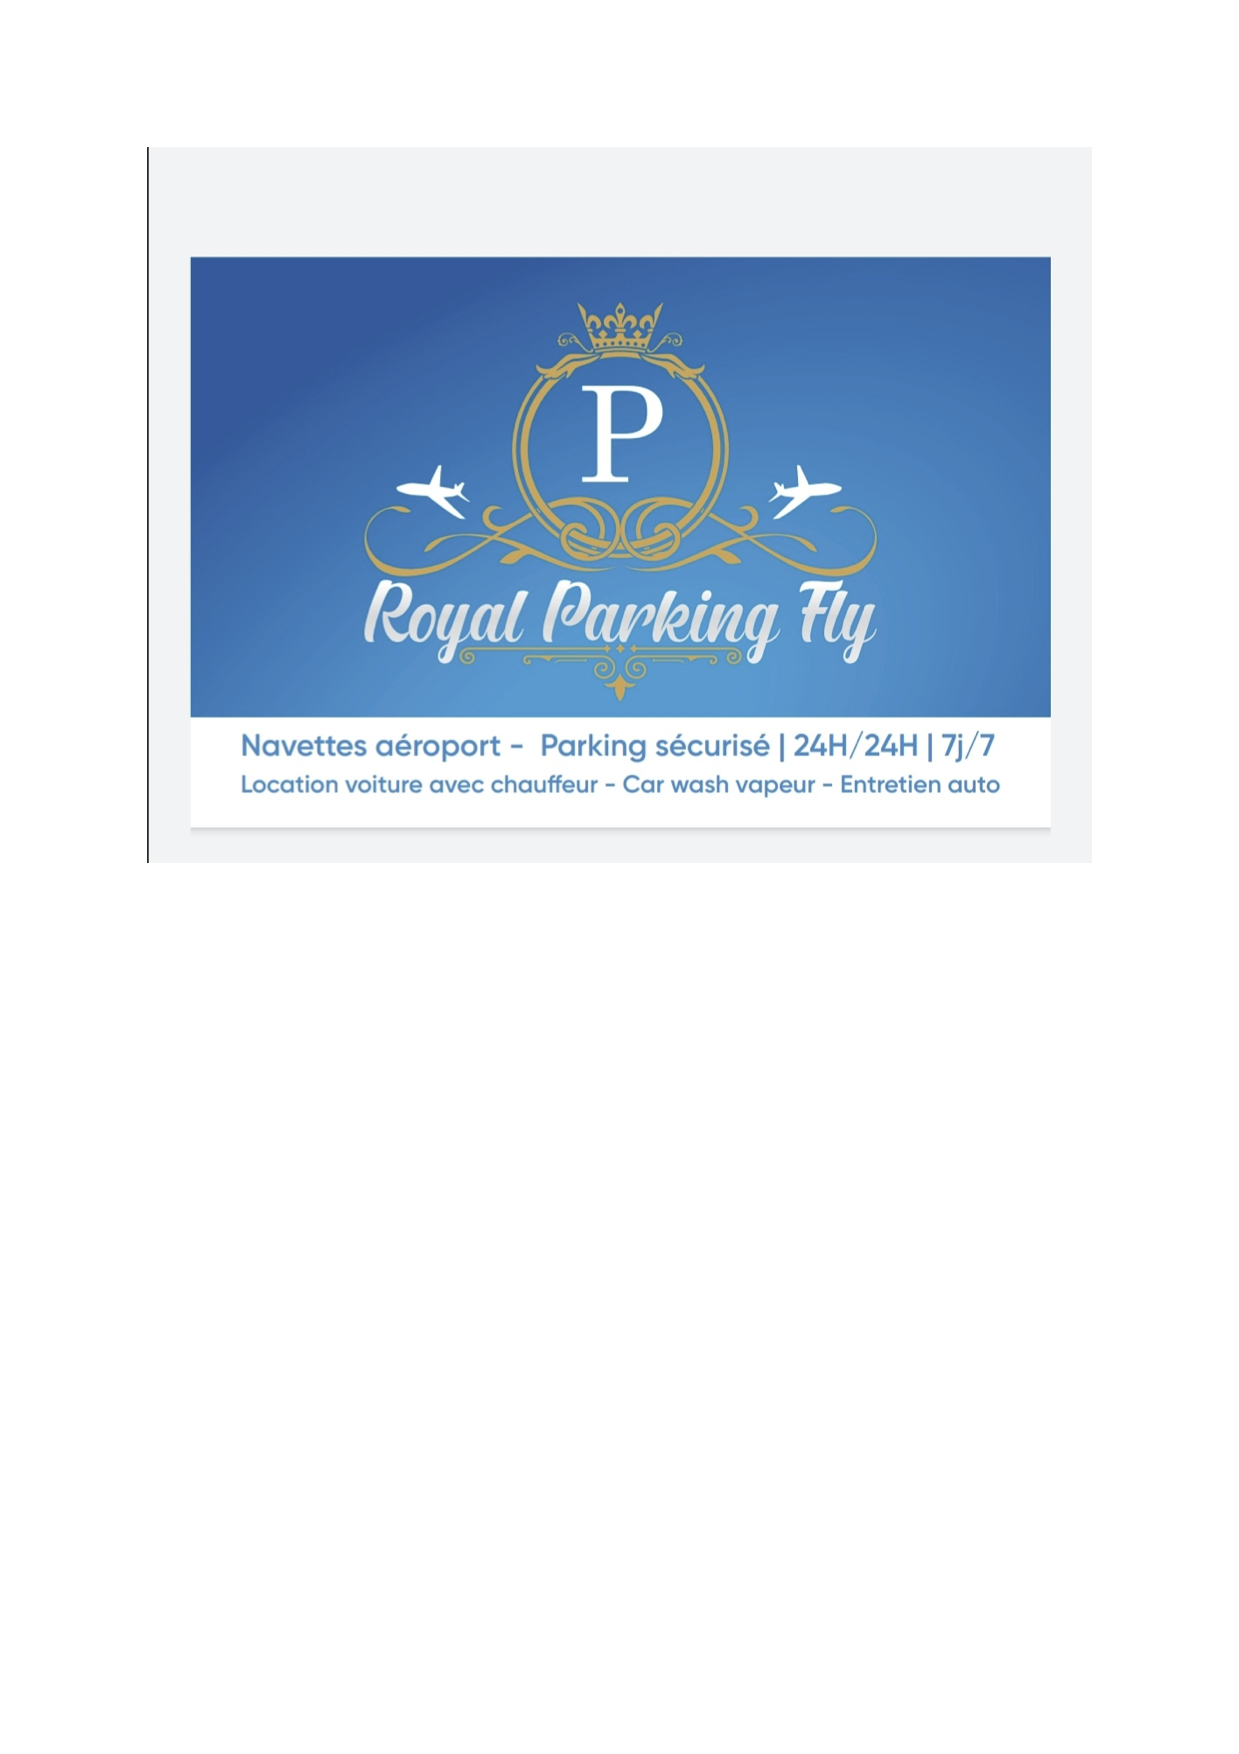 Royal Parking Fly